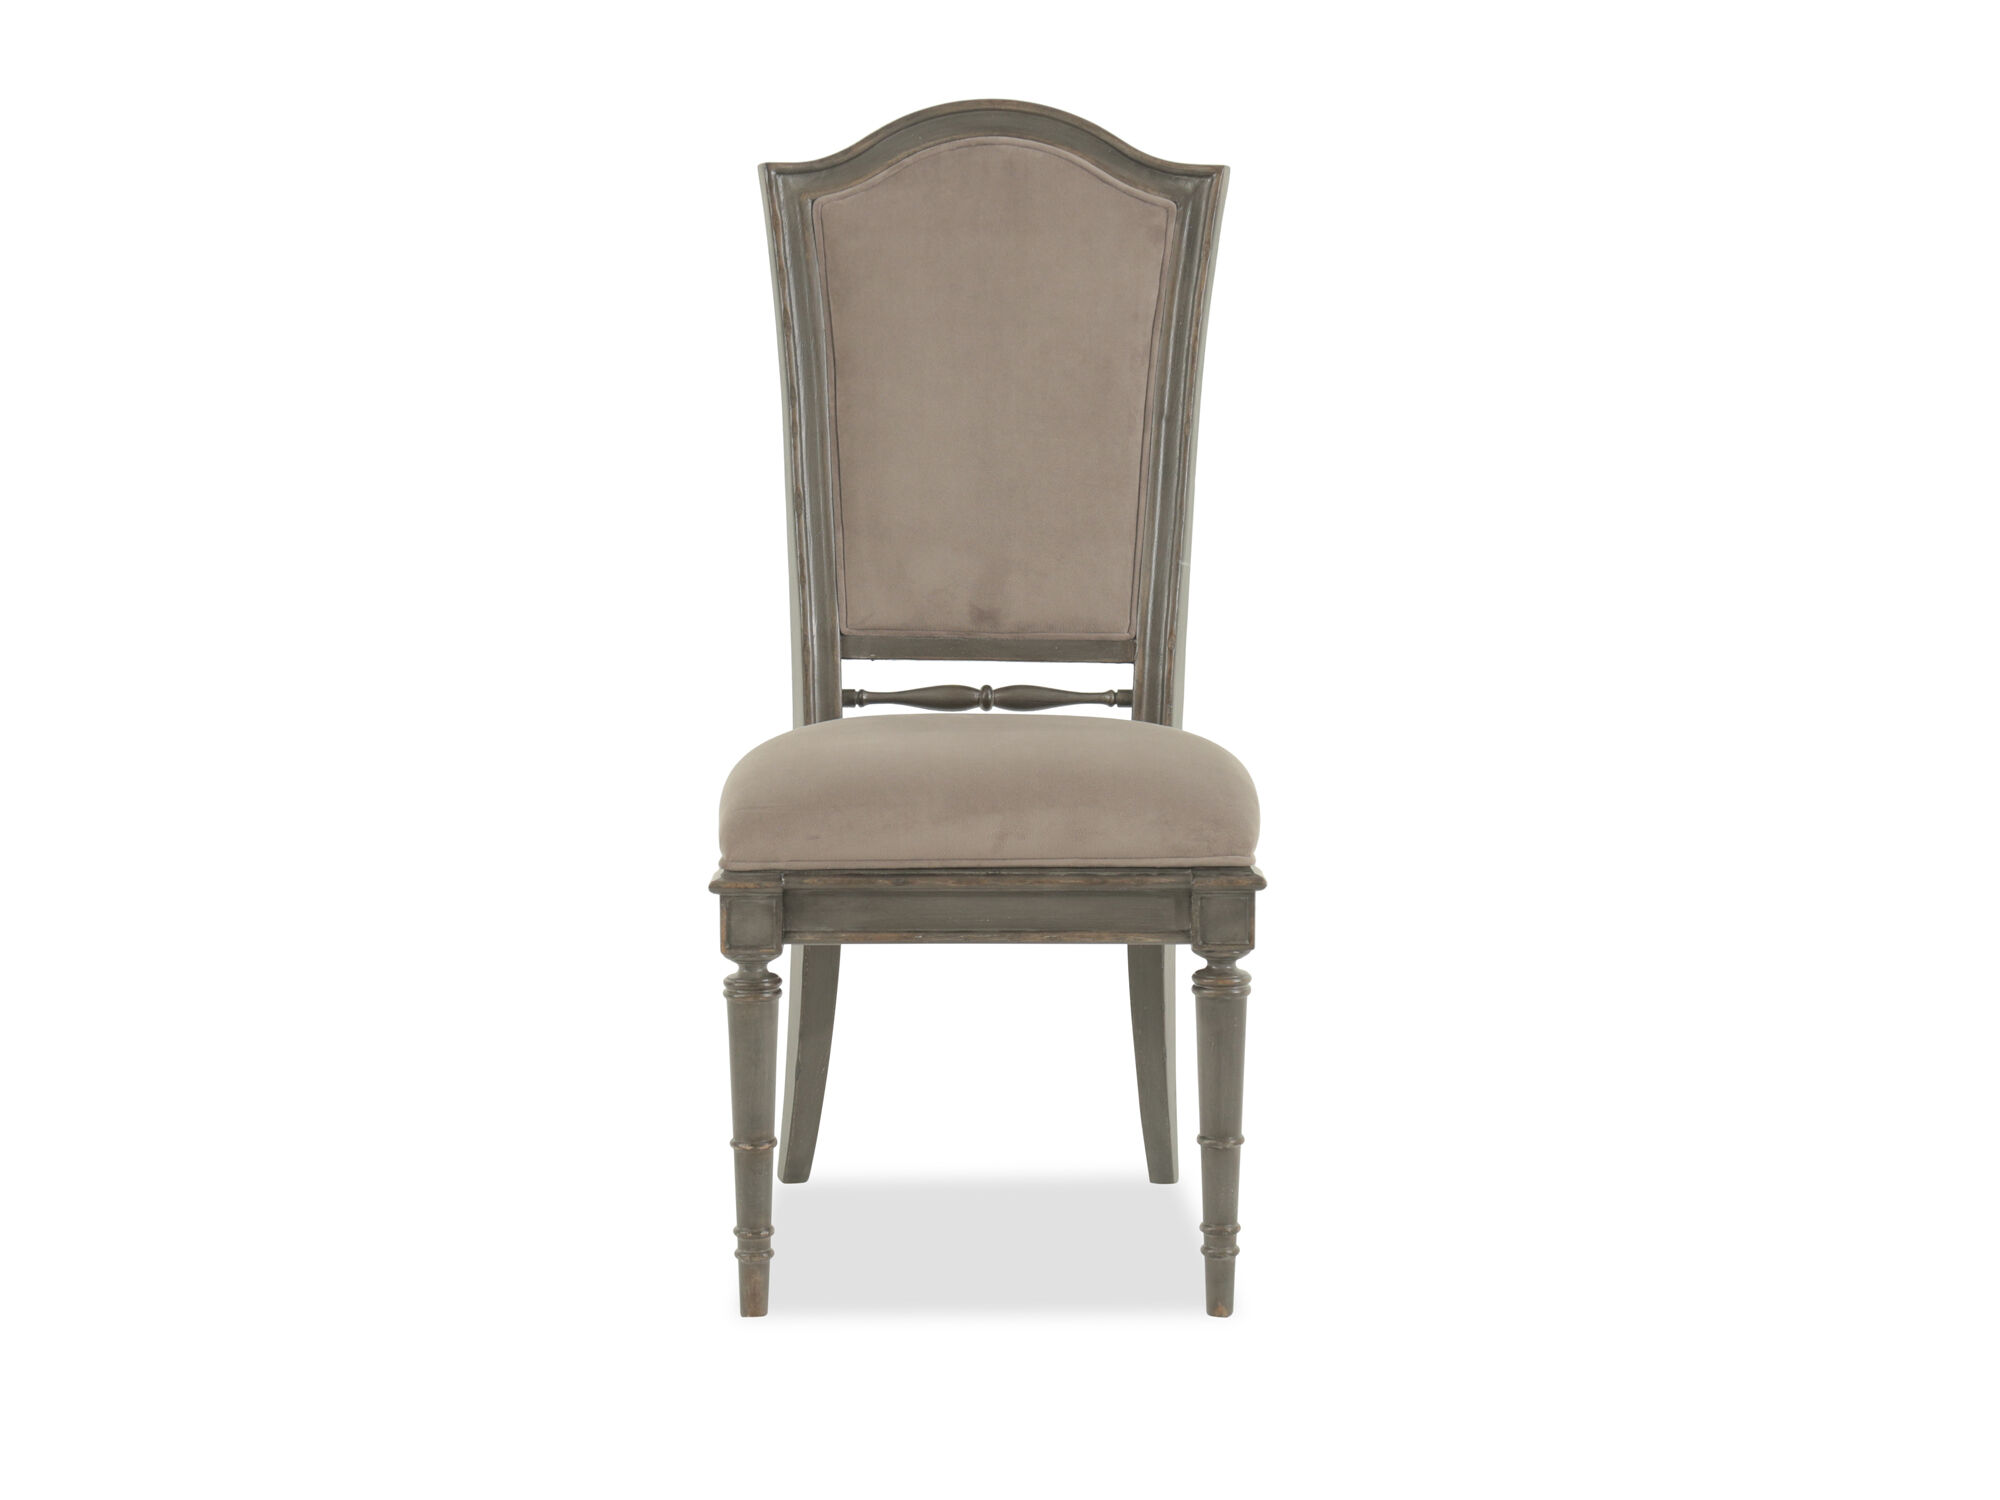 Images Refined Romantic Luxury 44u0026quot; Side Chair In Gray Refined Romantic  Luxury 44u0026quot; Side Chair In Gray